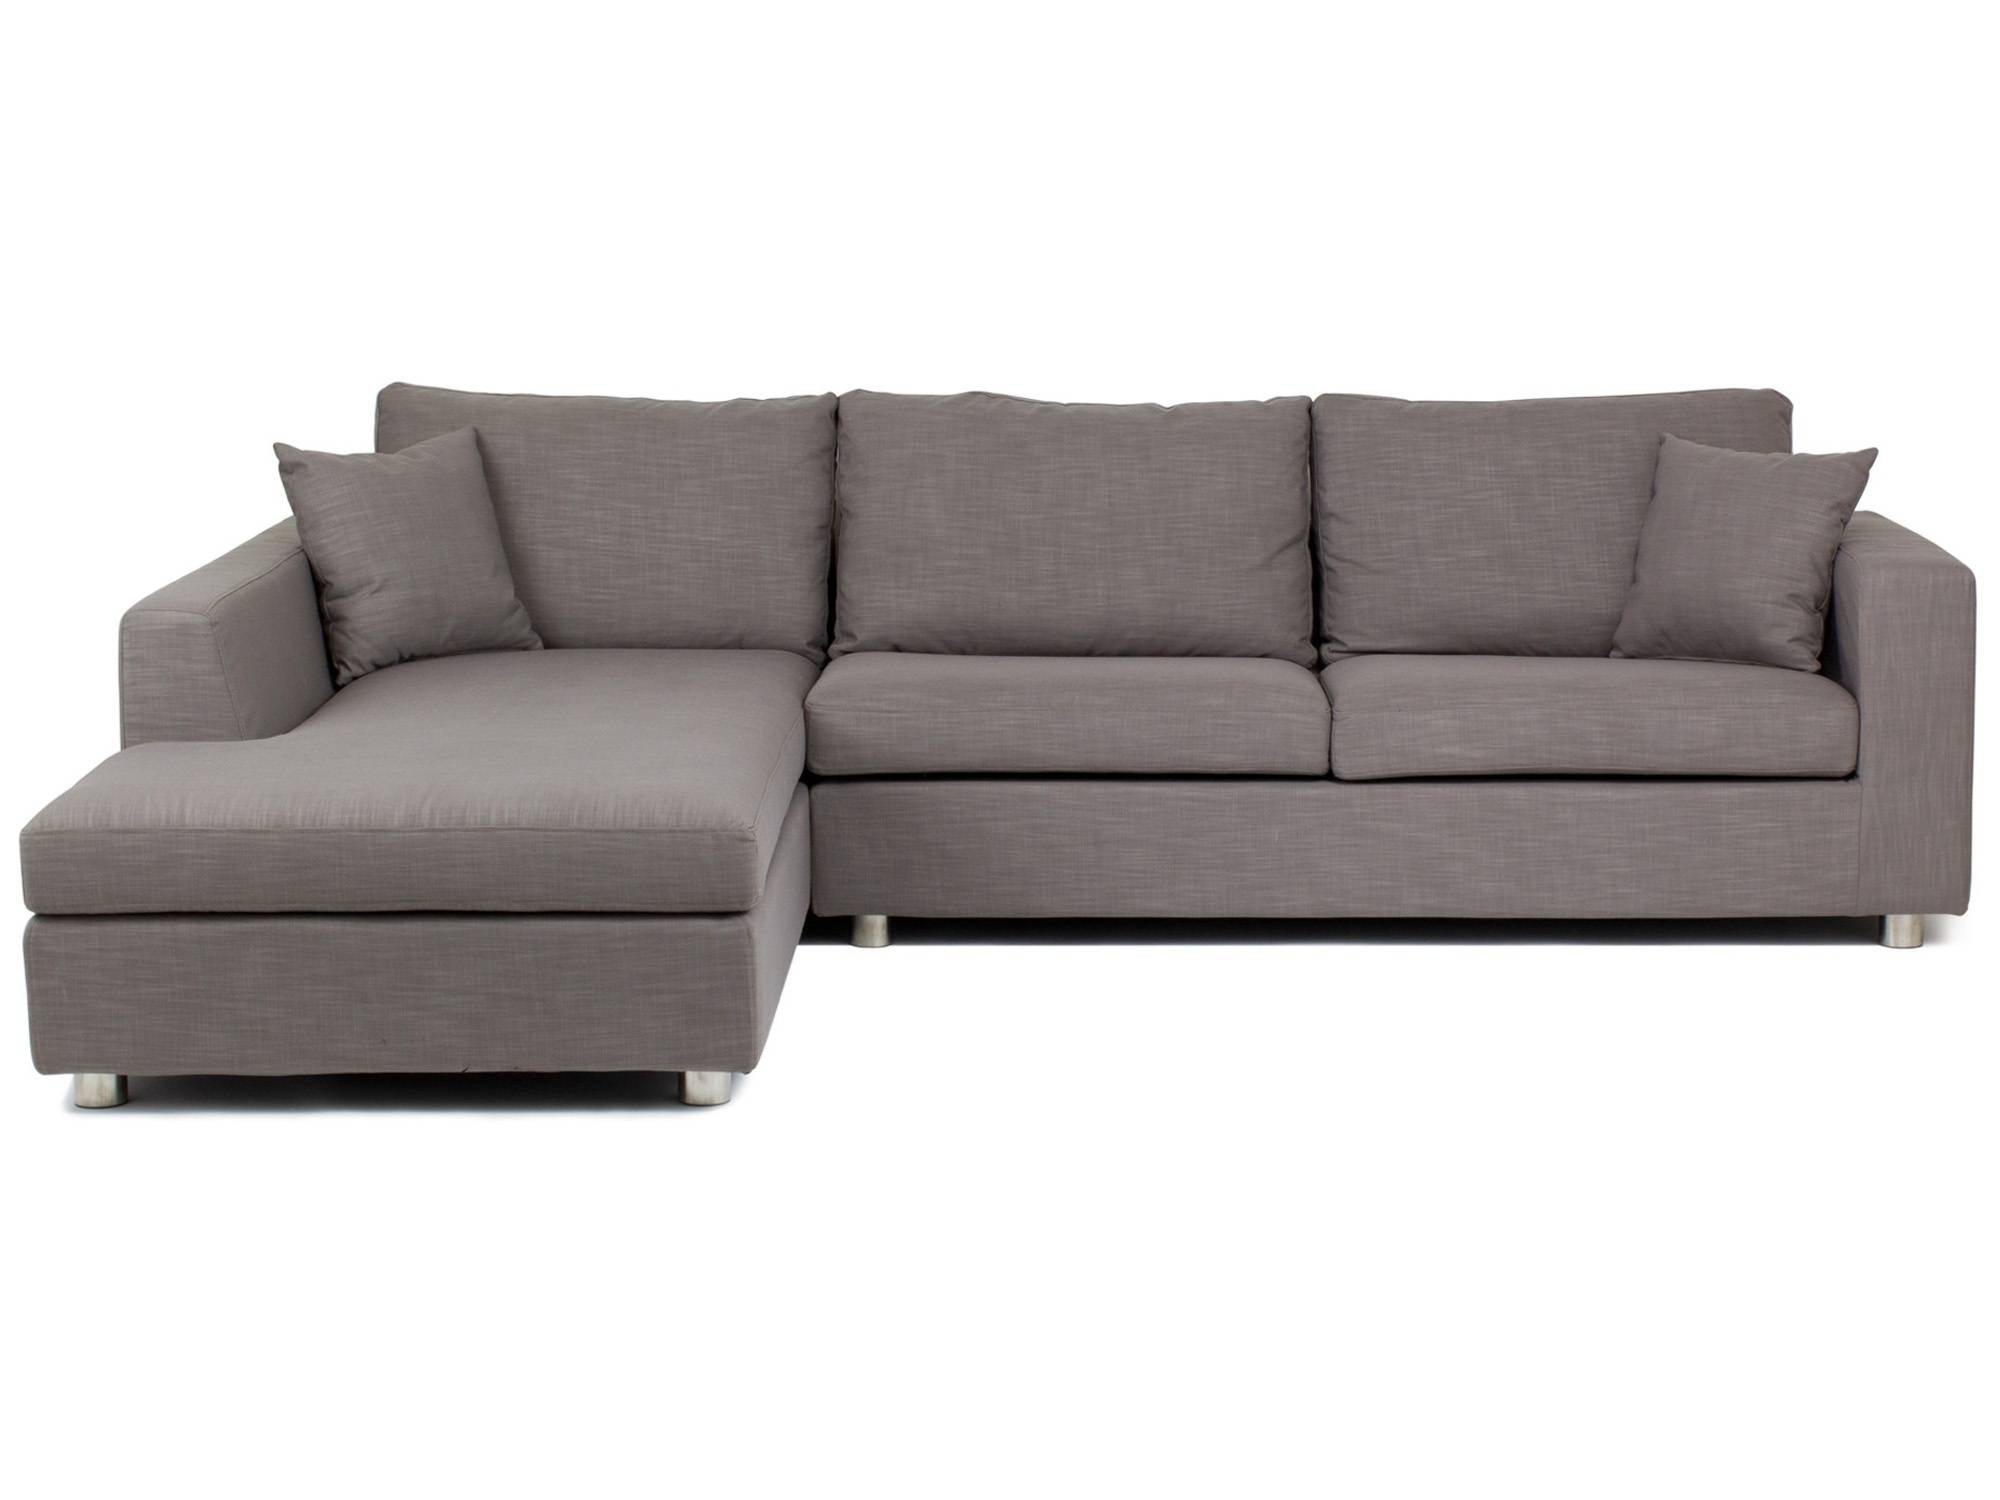 Mondo Storage - Corner Sofa Bed | Loungelovers inside Chaise Sofa Beds With Storage (Image 11 of 15)